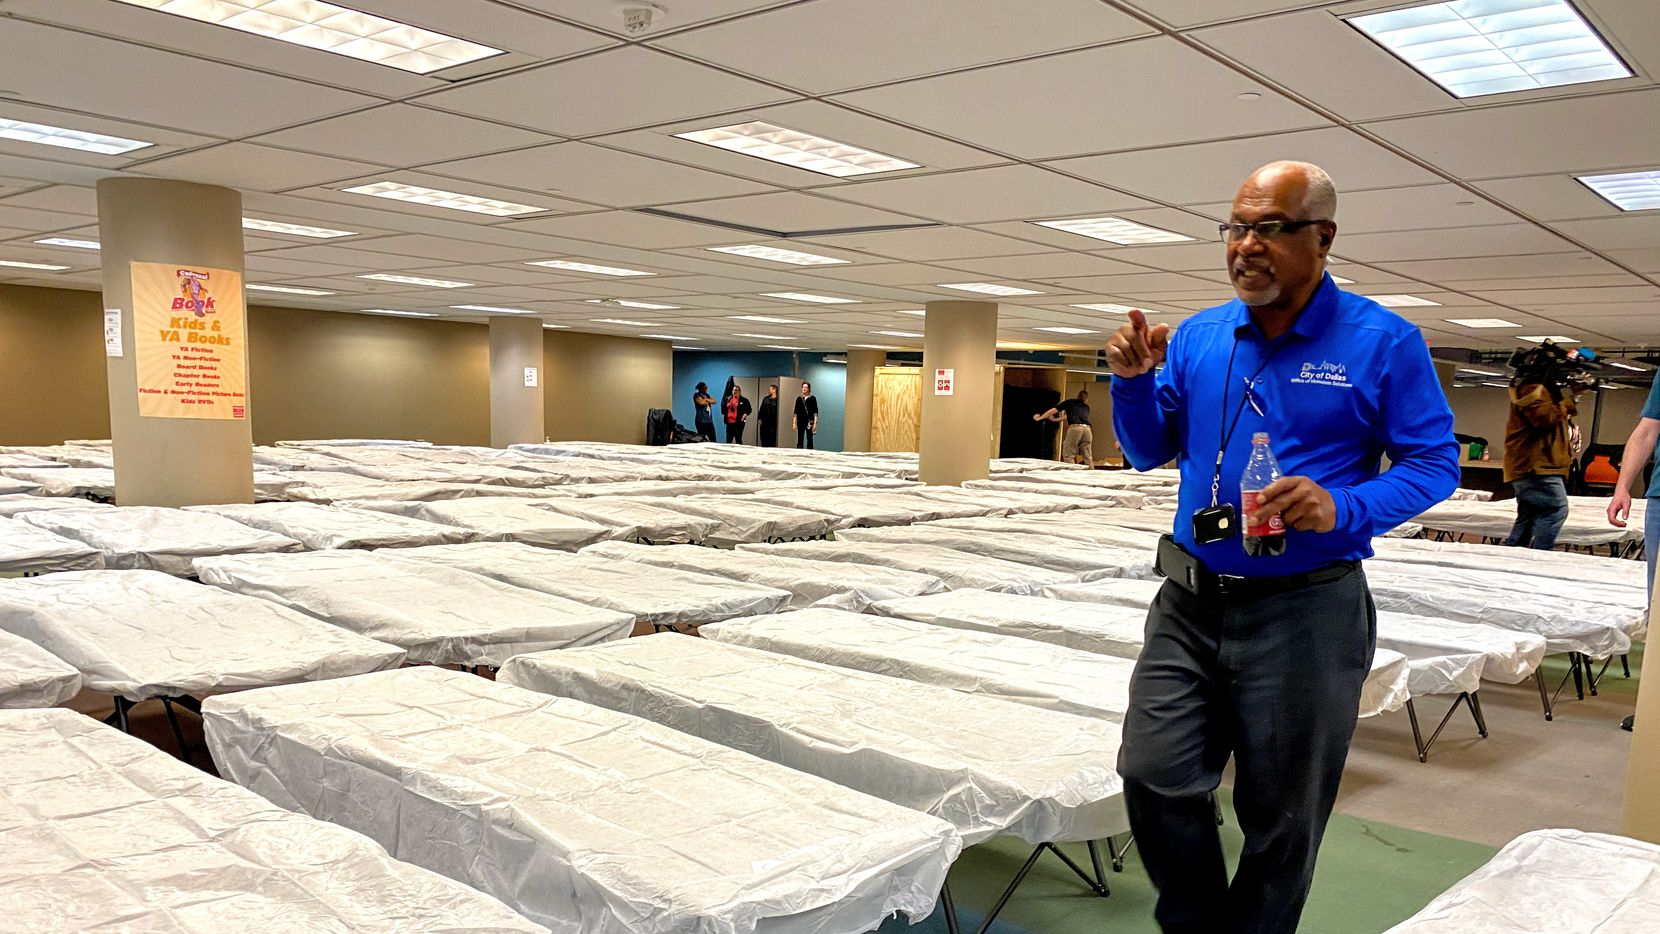 Winford Cross, Homeless Services Supervisor for the City of Dallas, counts cots at the Dallas Public Library in Dallas, Texas on Feb. 4, 2020. In preparation of cold weather, the city is opening a temporary shelter in the basement of the central library.